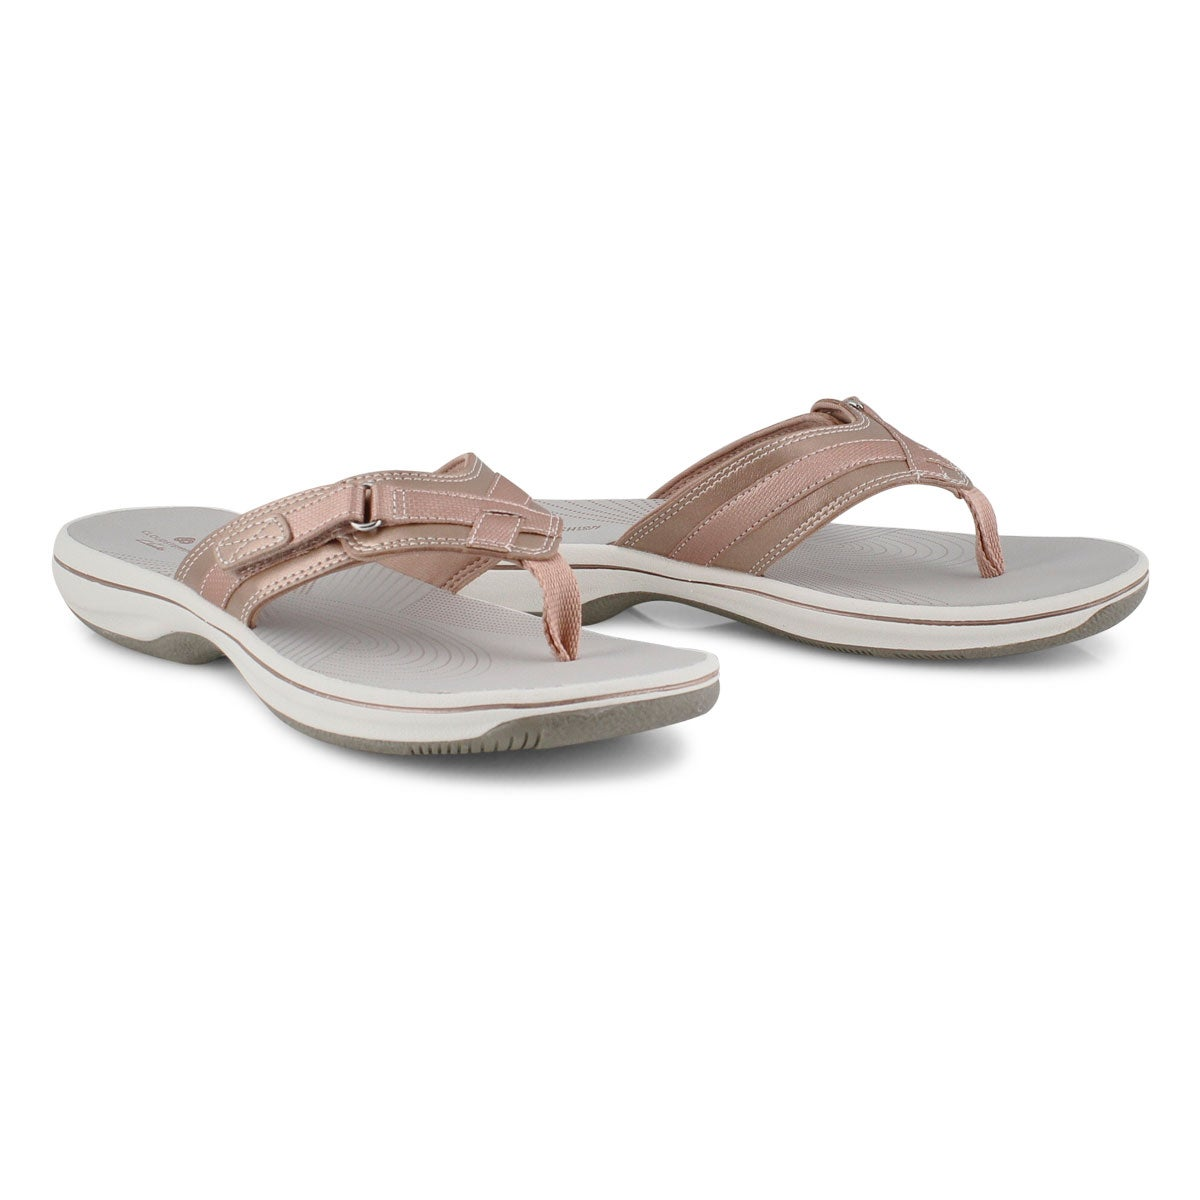 Lds Breeze Sea rose gold thong sandal